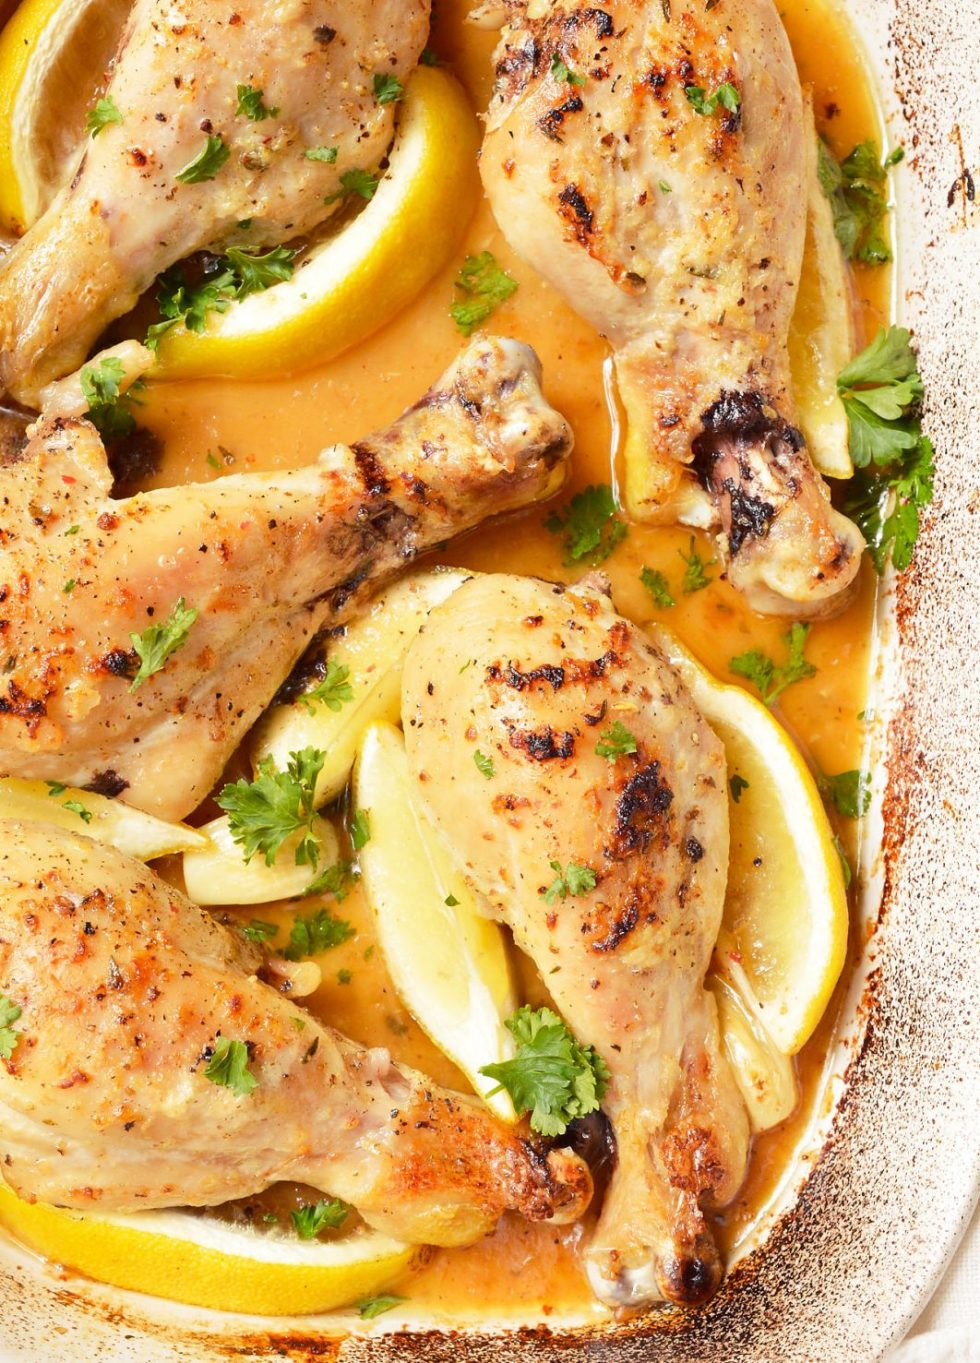 roasted chicken pieces in butter garlic lemon and parsley